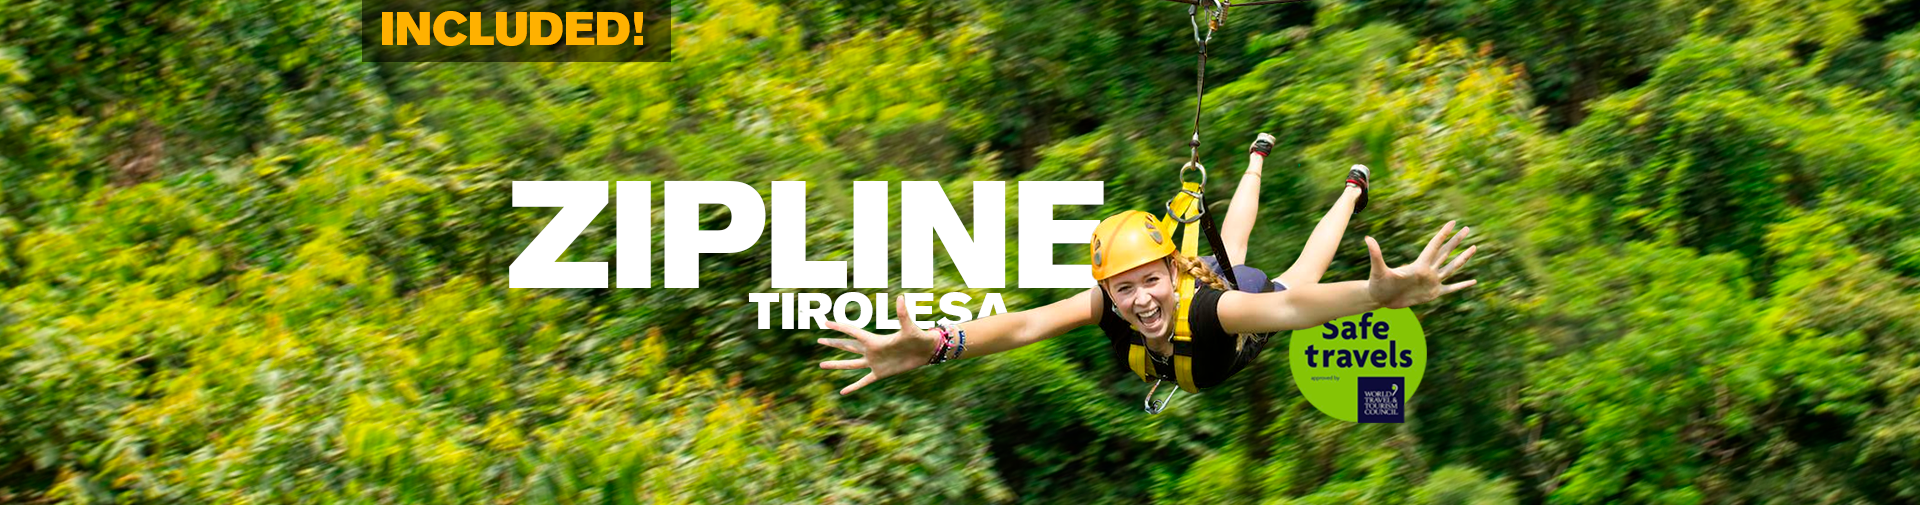 zipline_tirolesa_atv_mini